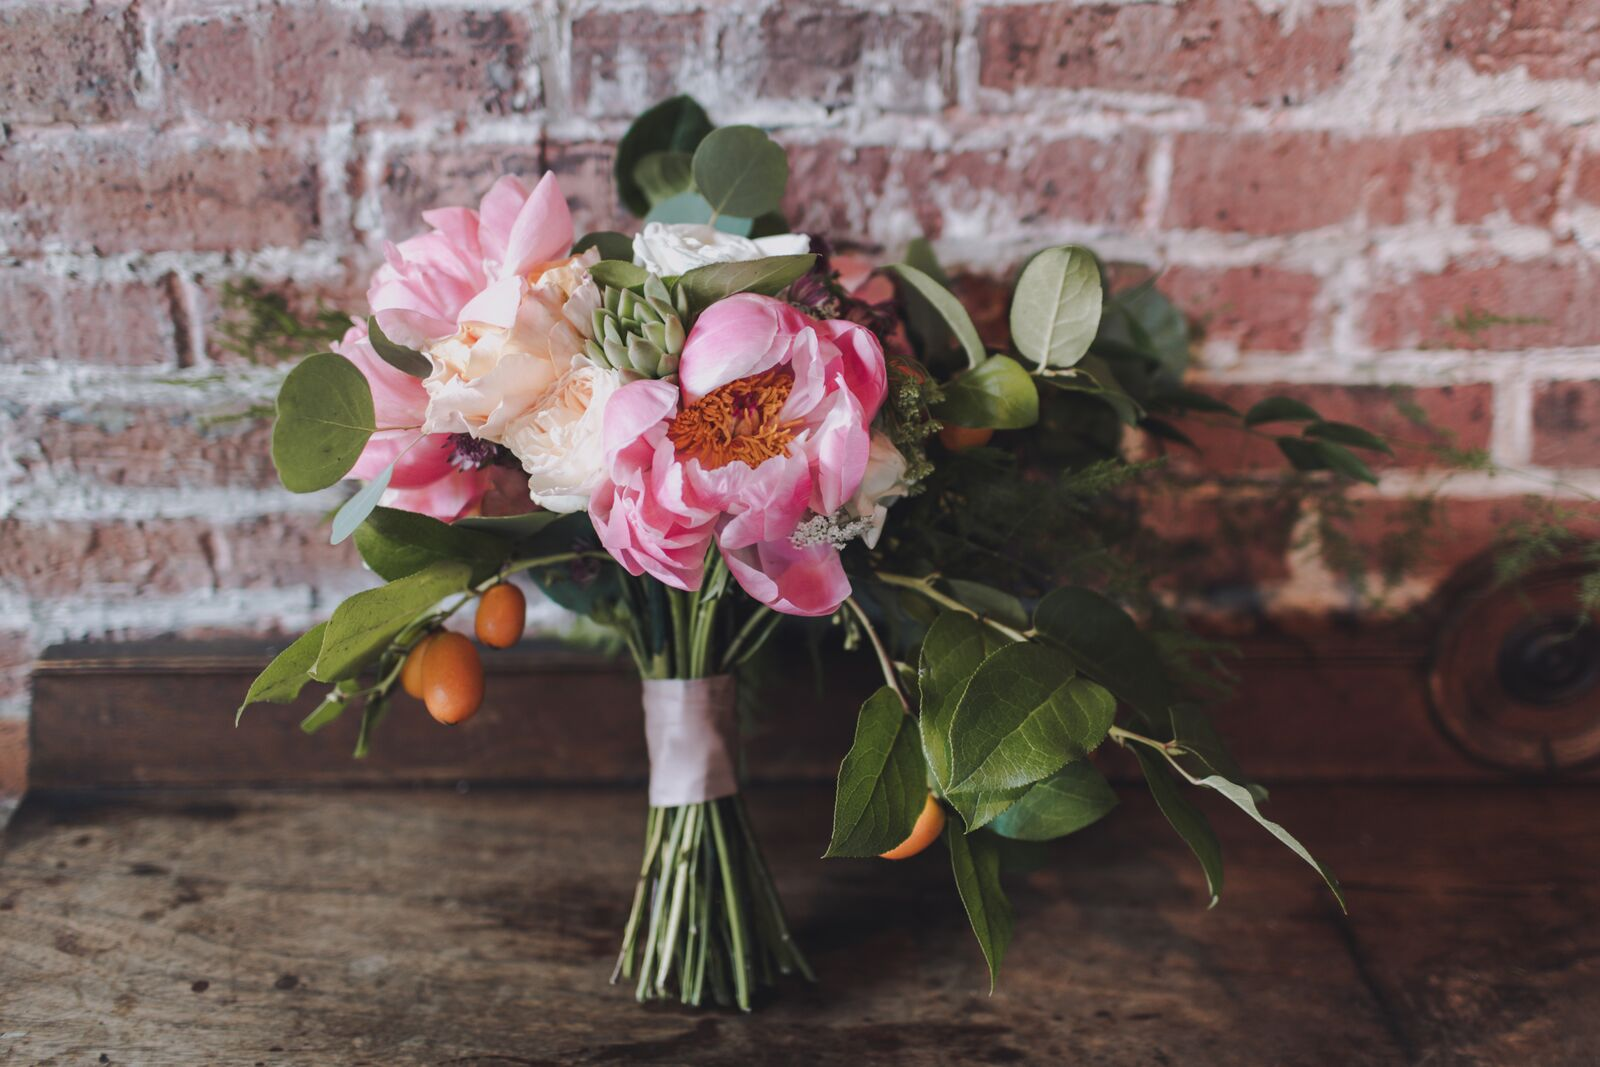 Sustainable Eco-friendly wedding celebration floral bouquet